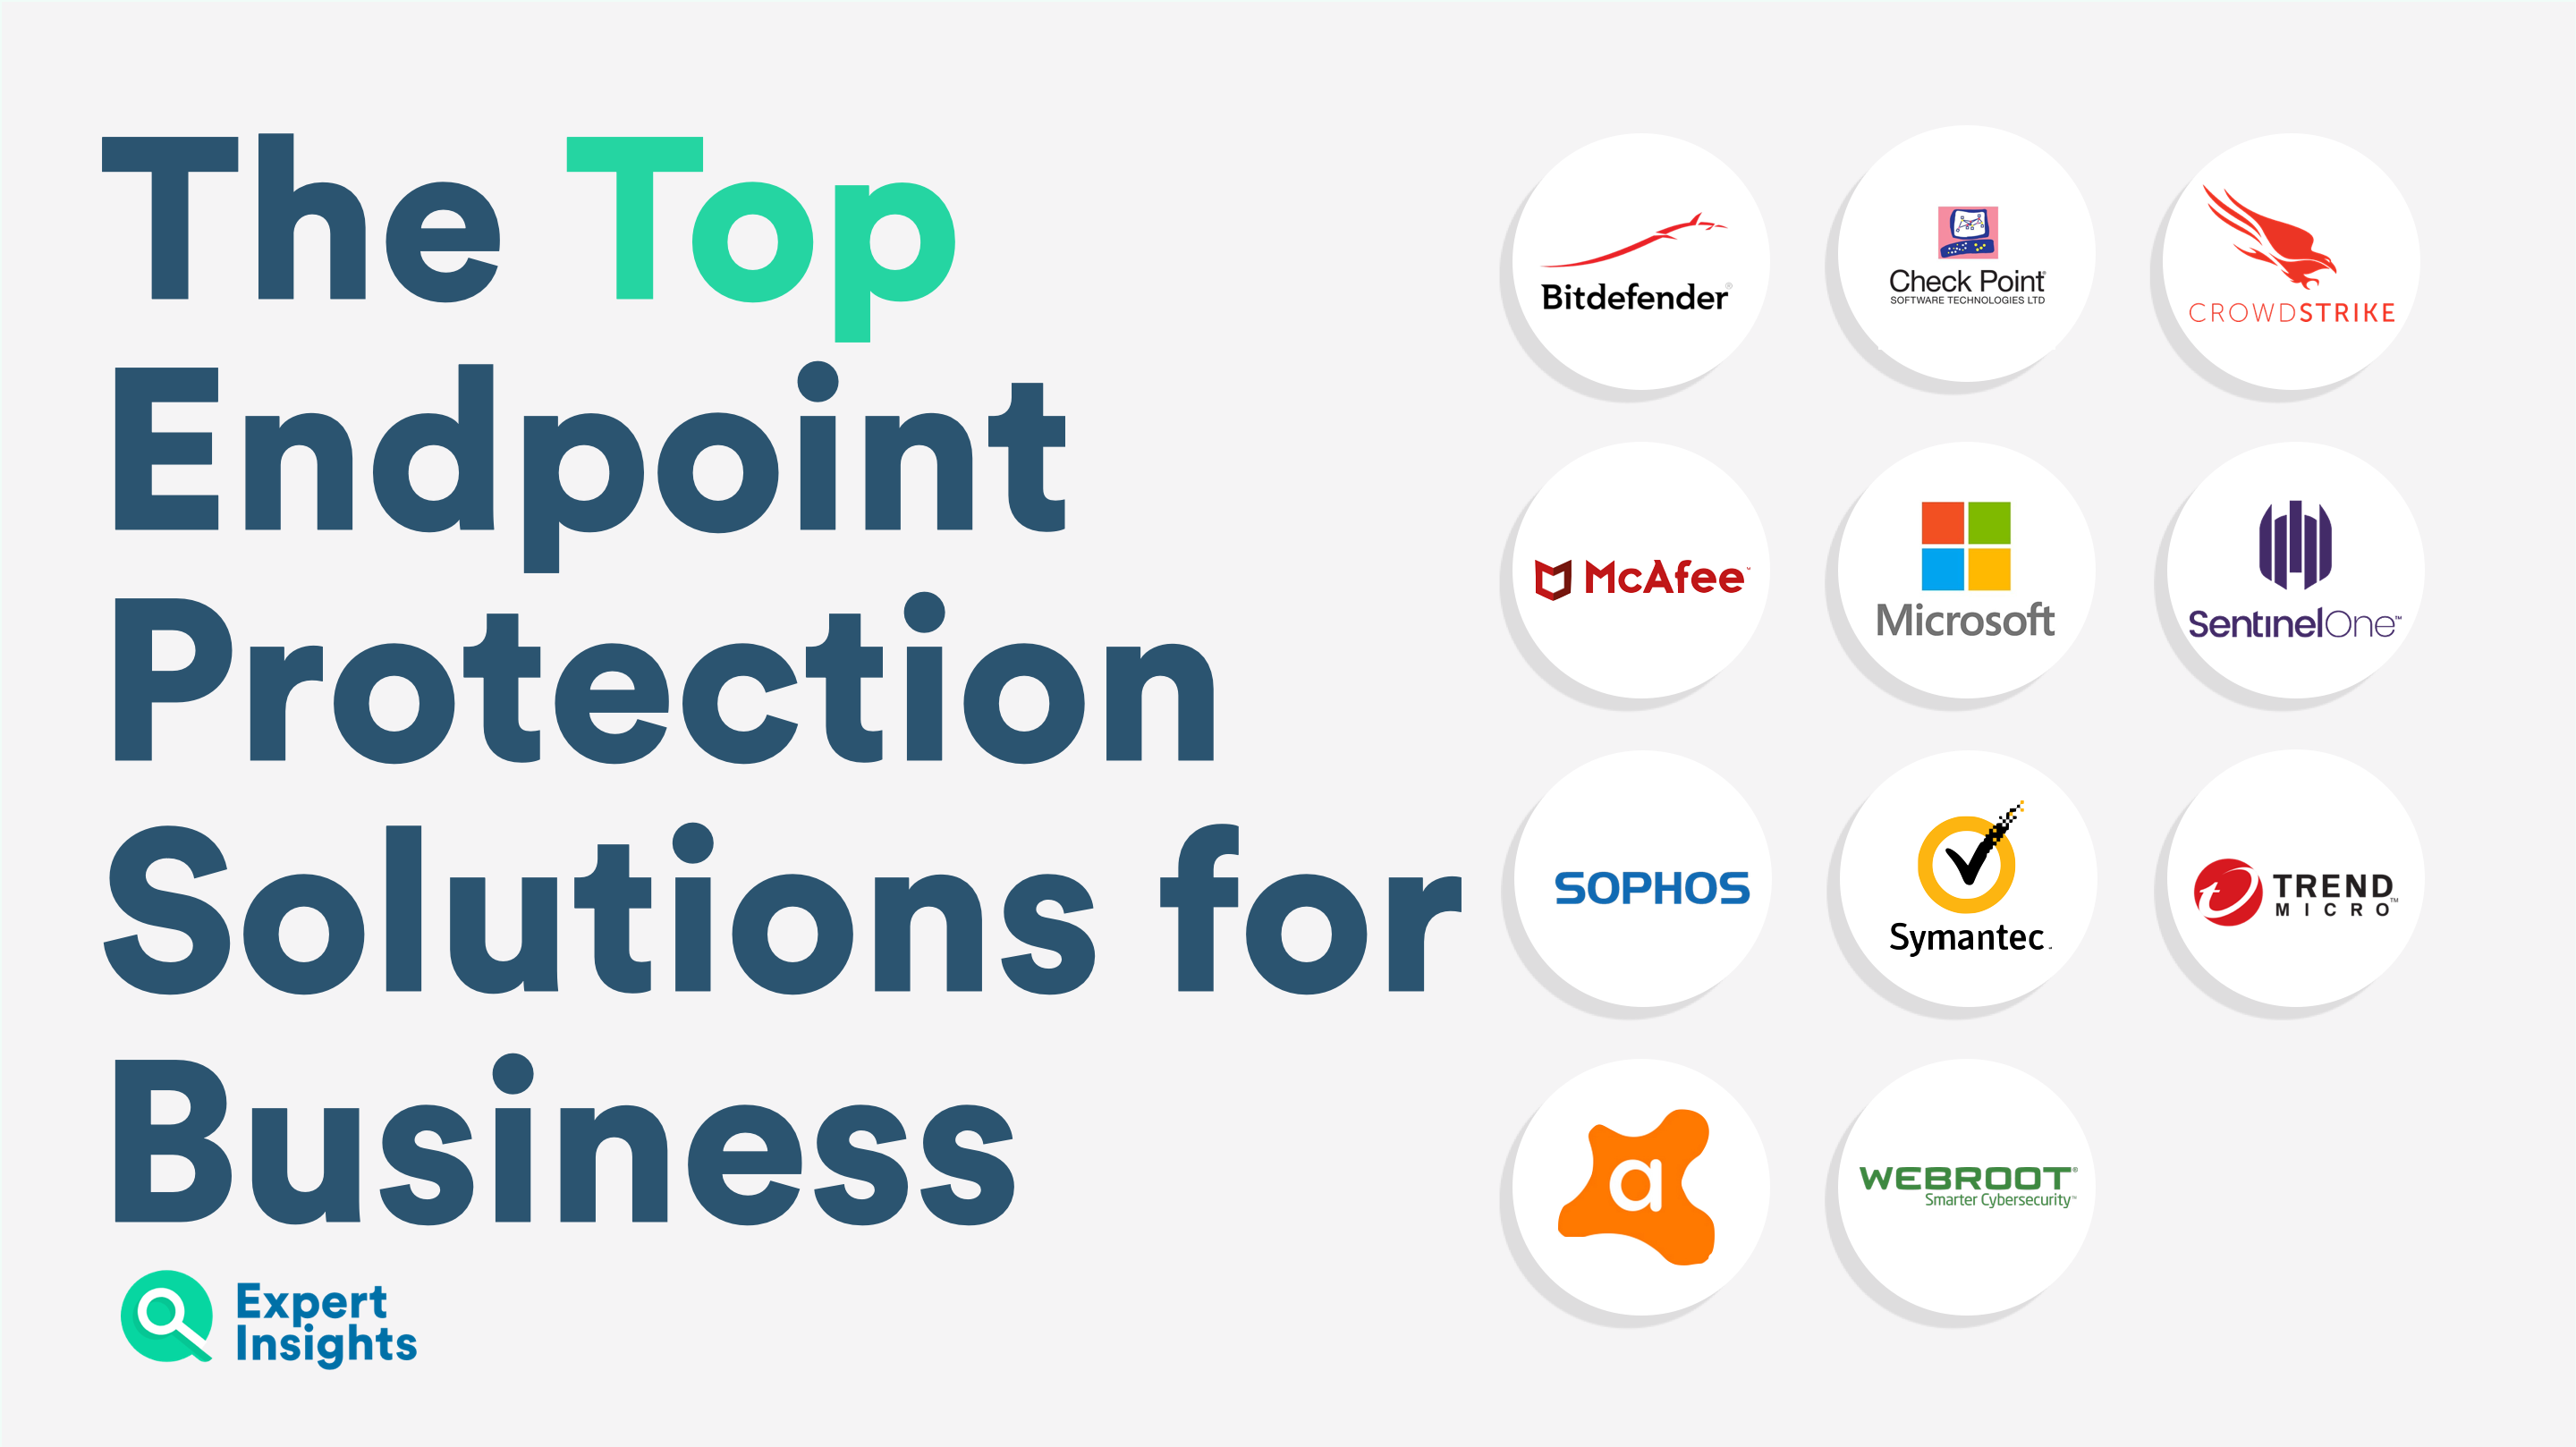 Top Endpoint Protection Solutions For Business